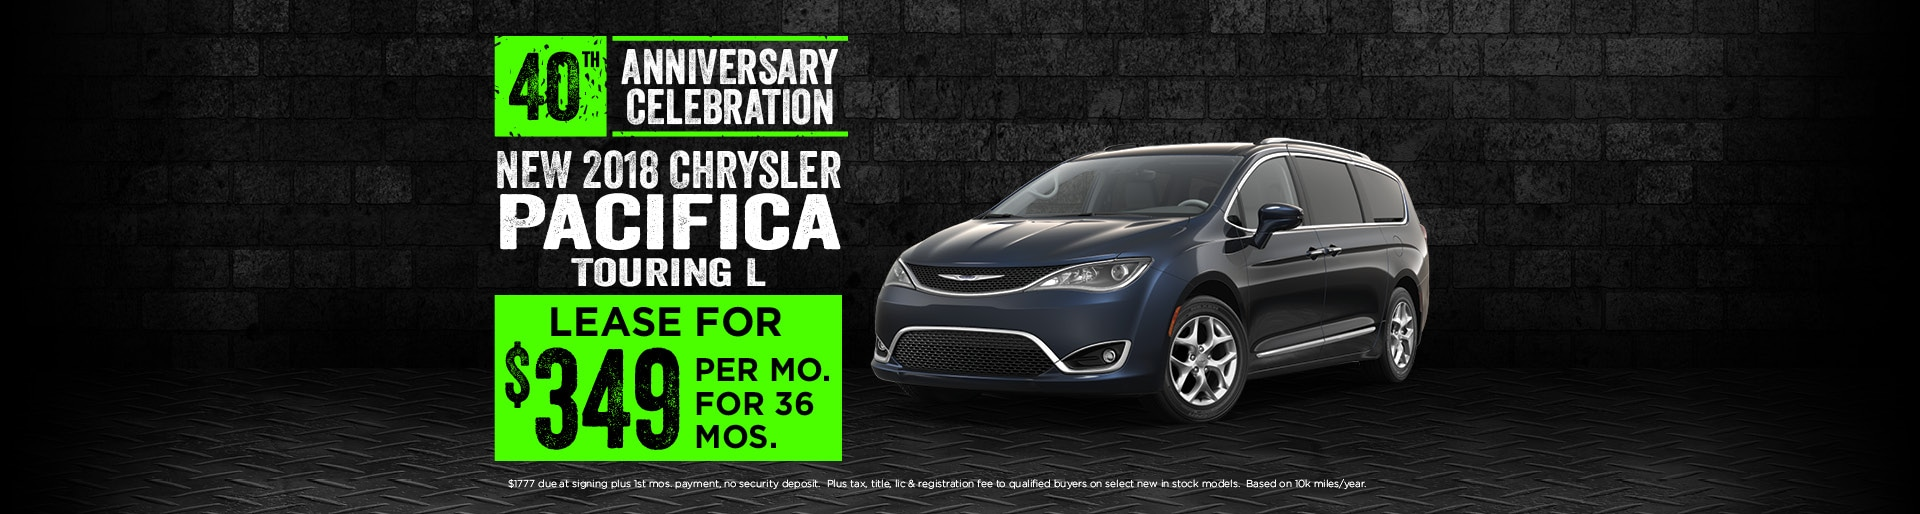 2018 Chrysler Pacifica Lease deals